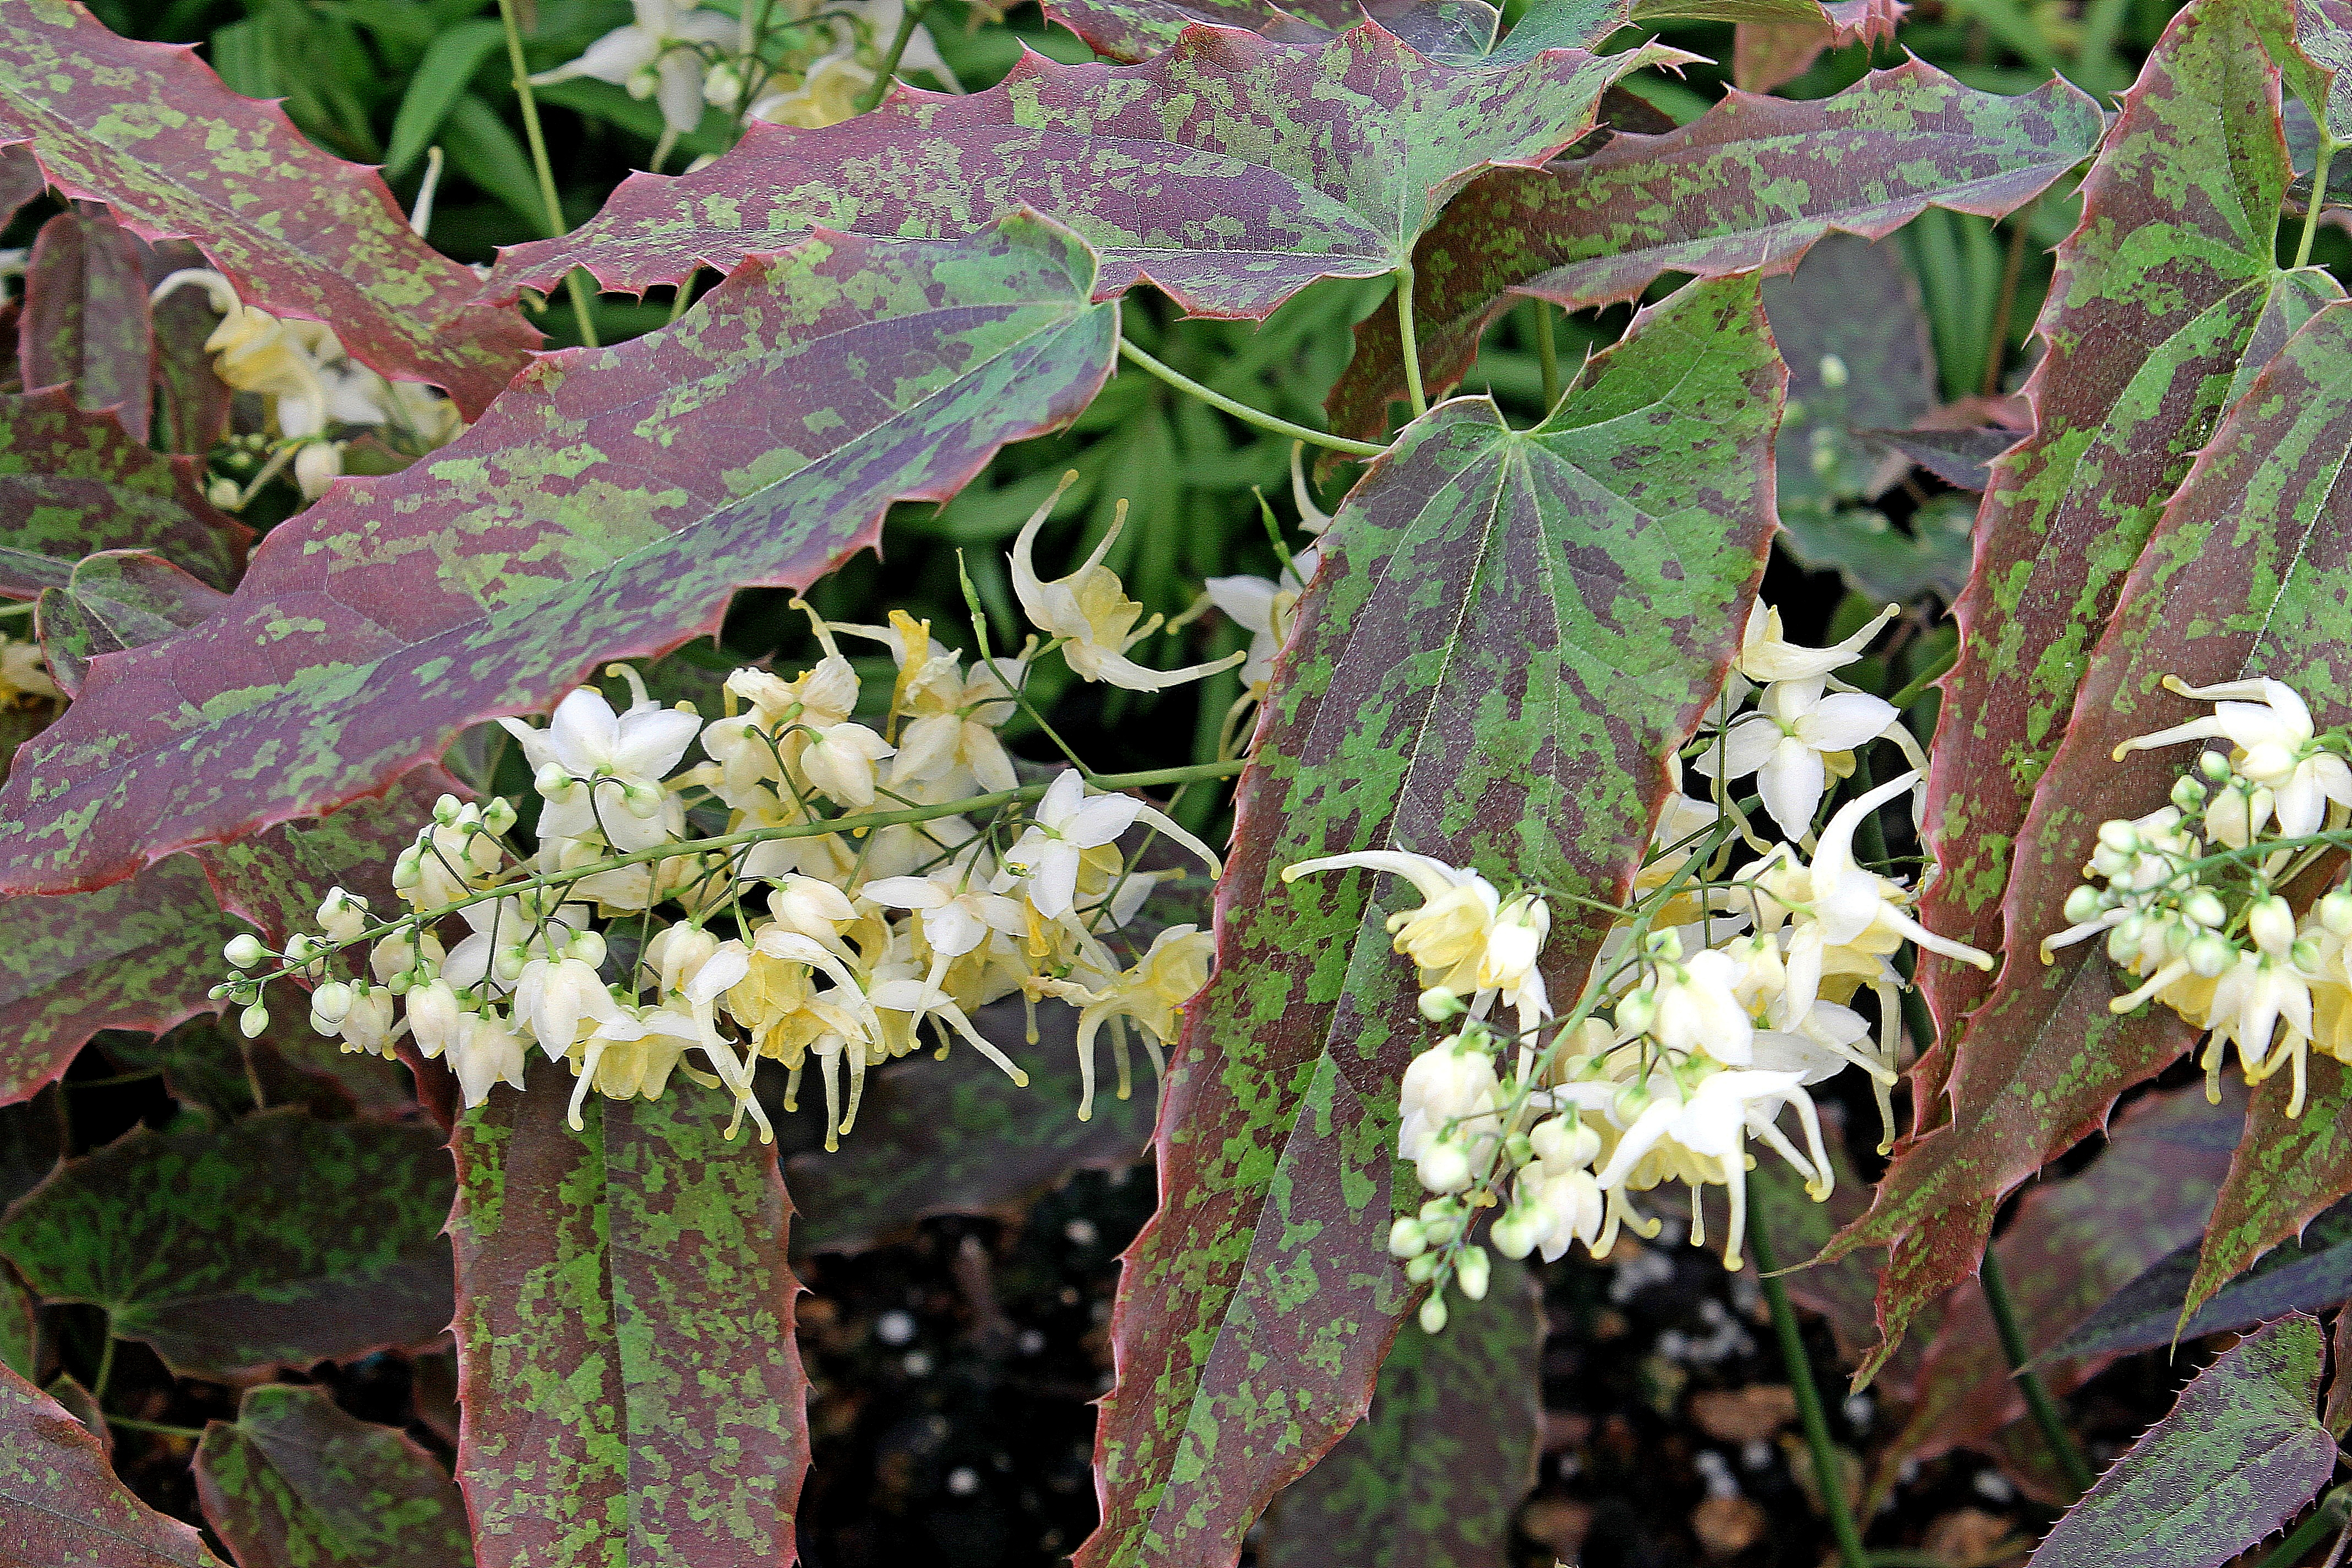 Epimedium wushanense 'Supper Mottle' @ JLBG - a 2016 JLBG/PDN introduction of a clonal selection from imported Chinese plants